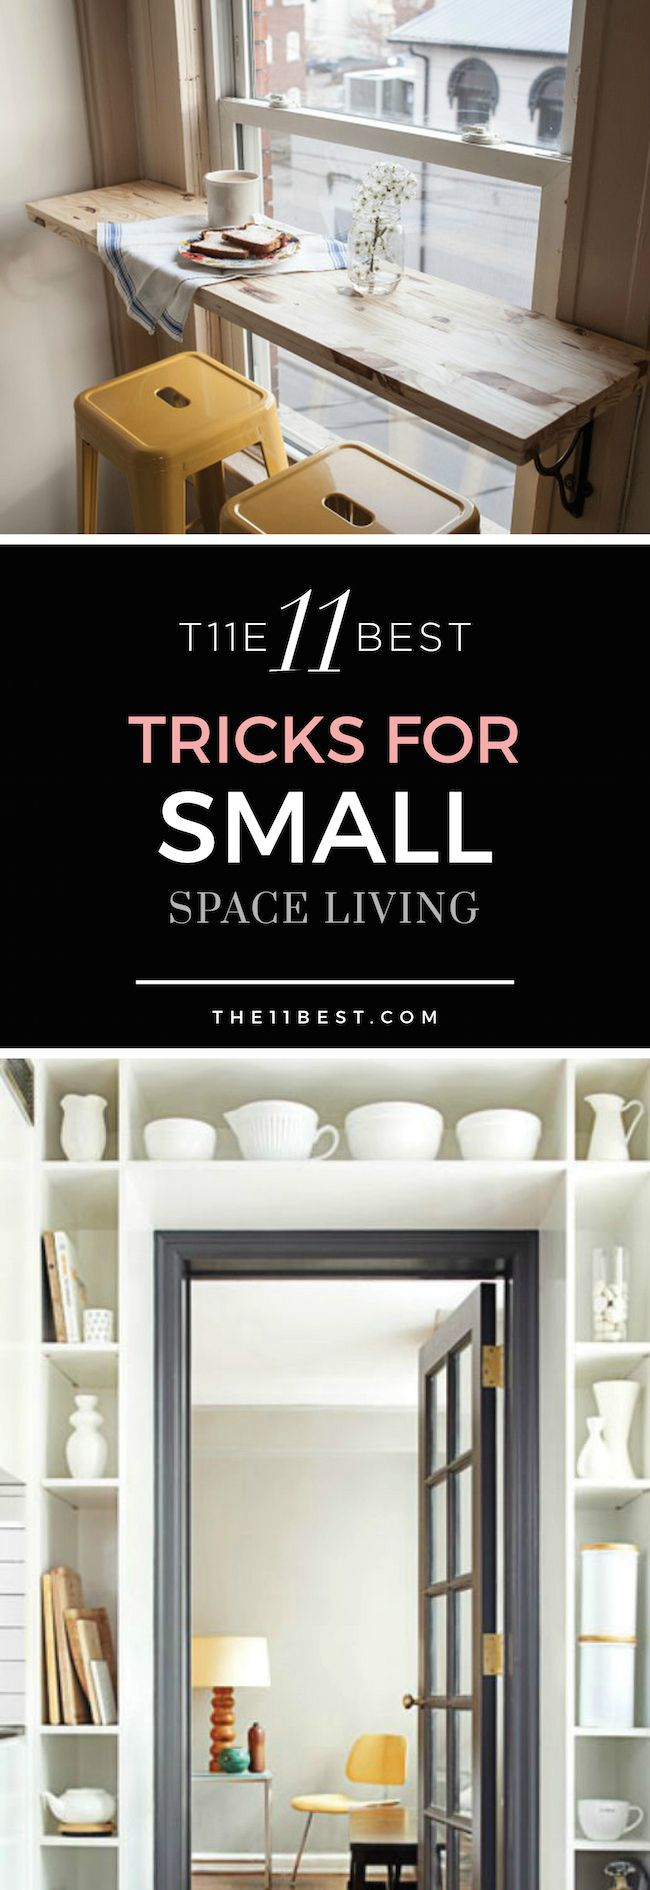 Small Space Living Ideas best 20+ small living ideas on pinterest | small living rooms